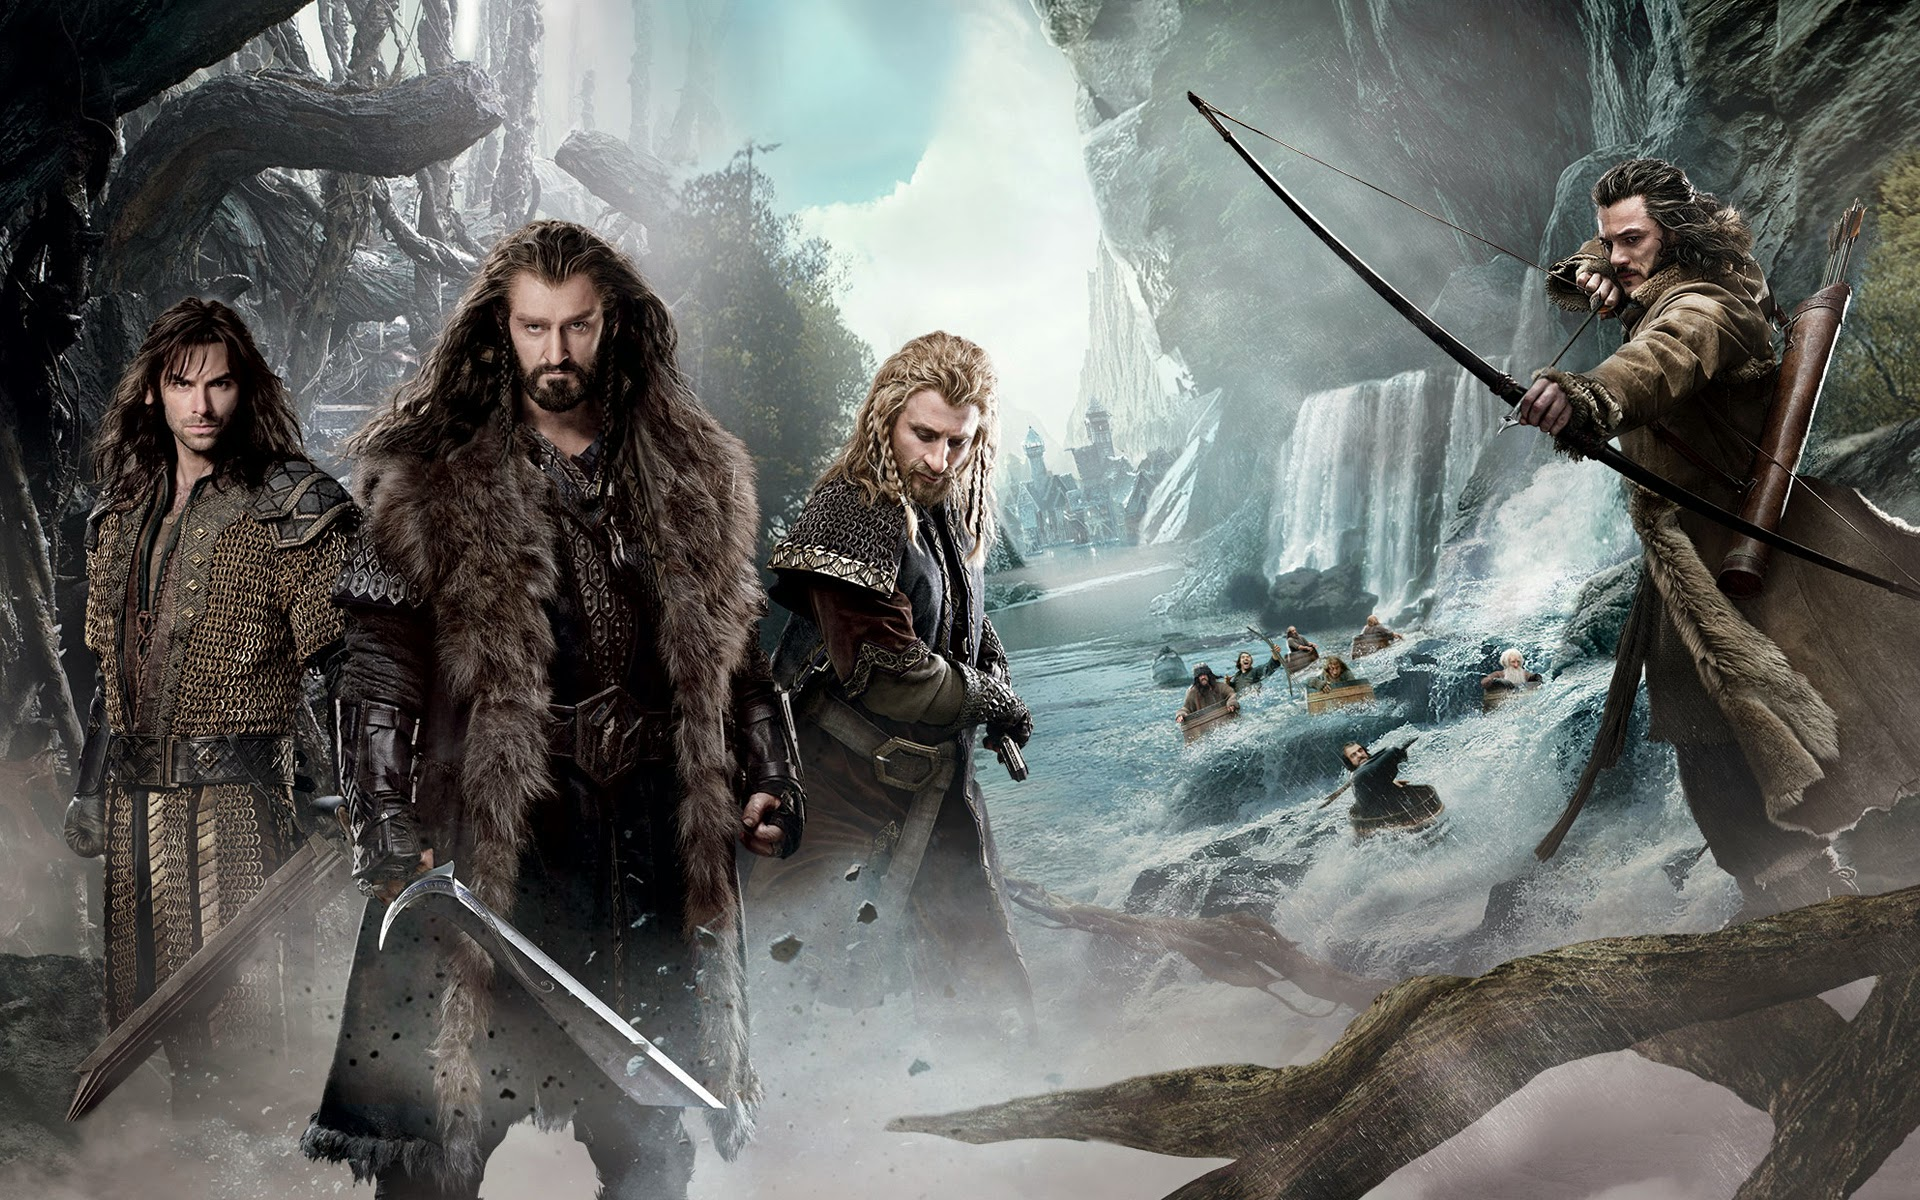 desolation of smaug 2013 movie hd wallpaper 1920x1200 widescreen a398 1920x1200